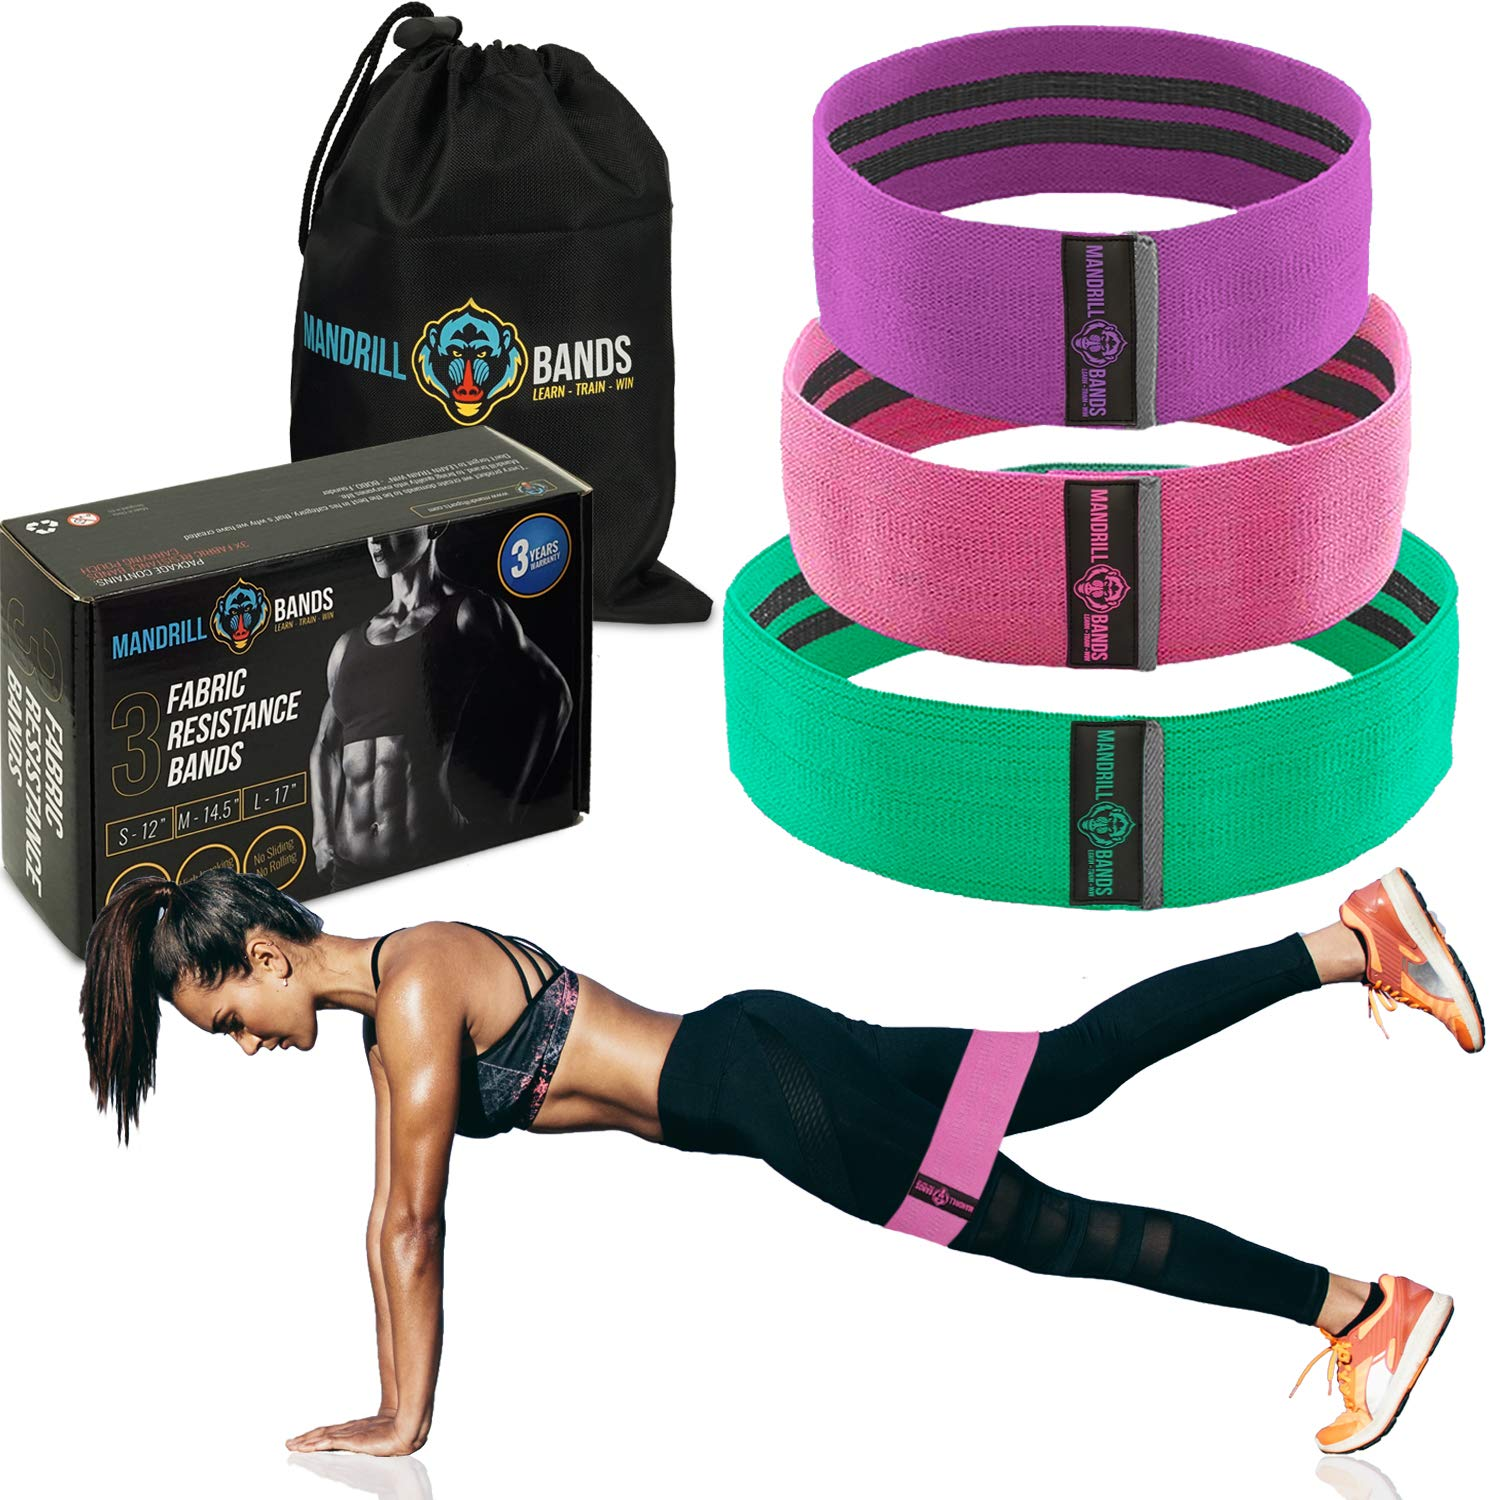 Fabric Resistance Bands (3 Pack) - No Slip - Exercise Bands for Legs and Booty. Perfect Resistance Loop Bands for Squats, Legs, Thigh and Hip Bands Workout + Carrying Bag + 3 Years Warranty